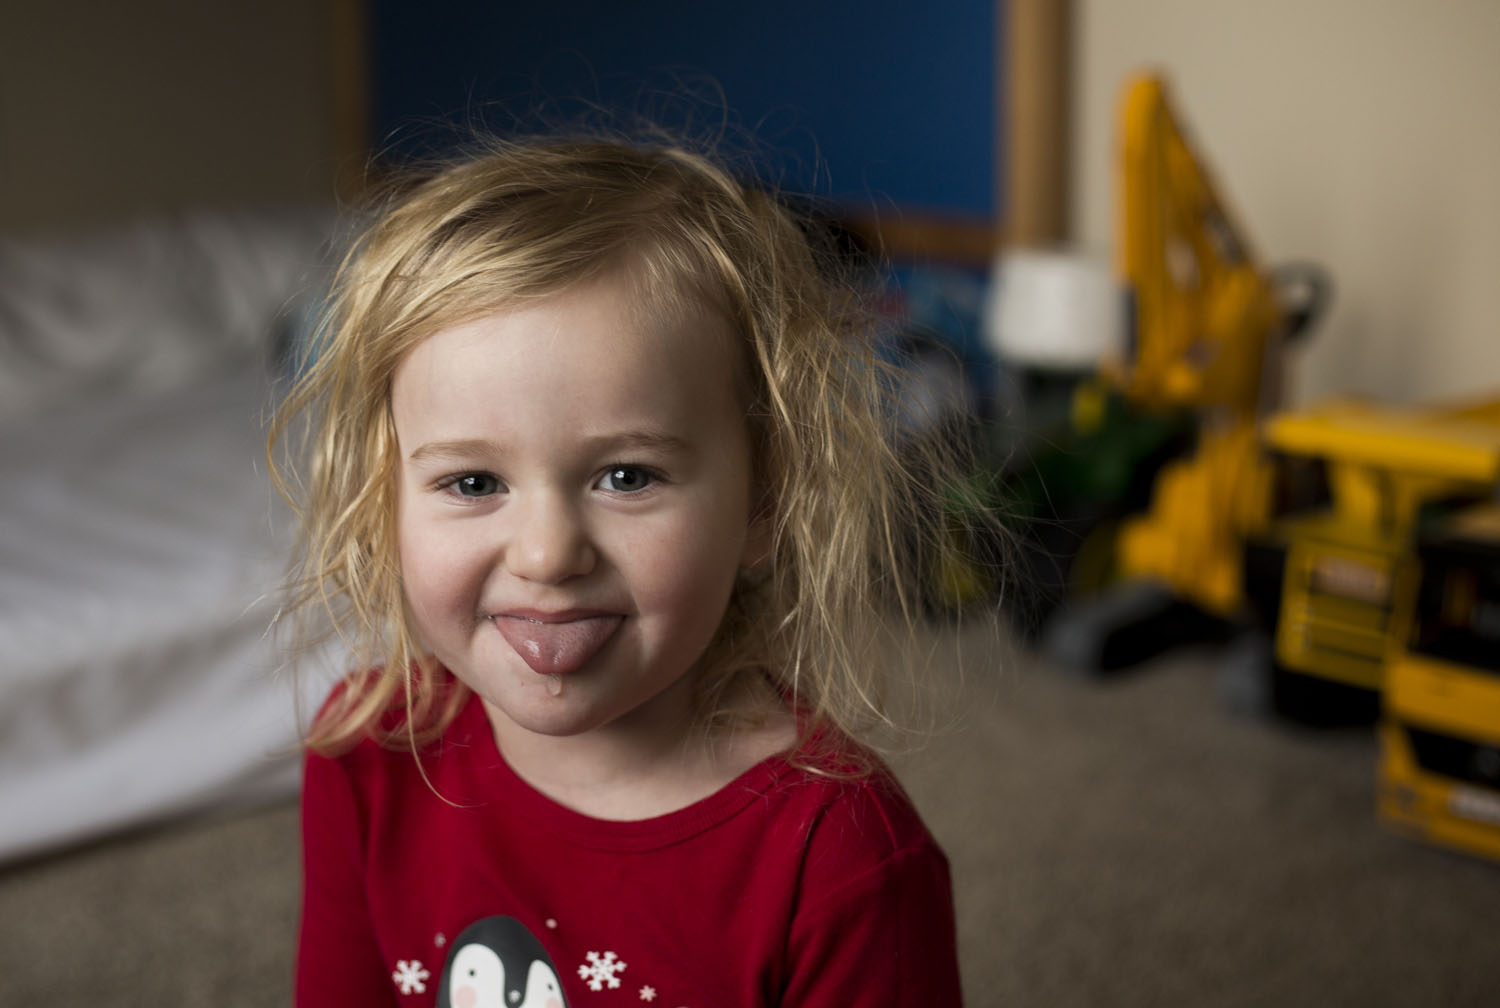 toddler sticking her tongue out in home lifestyle photographer family